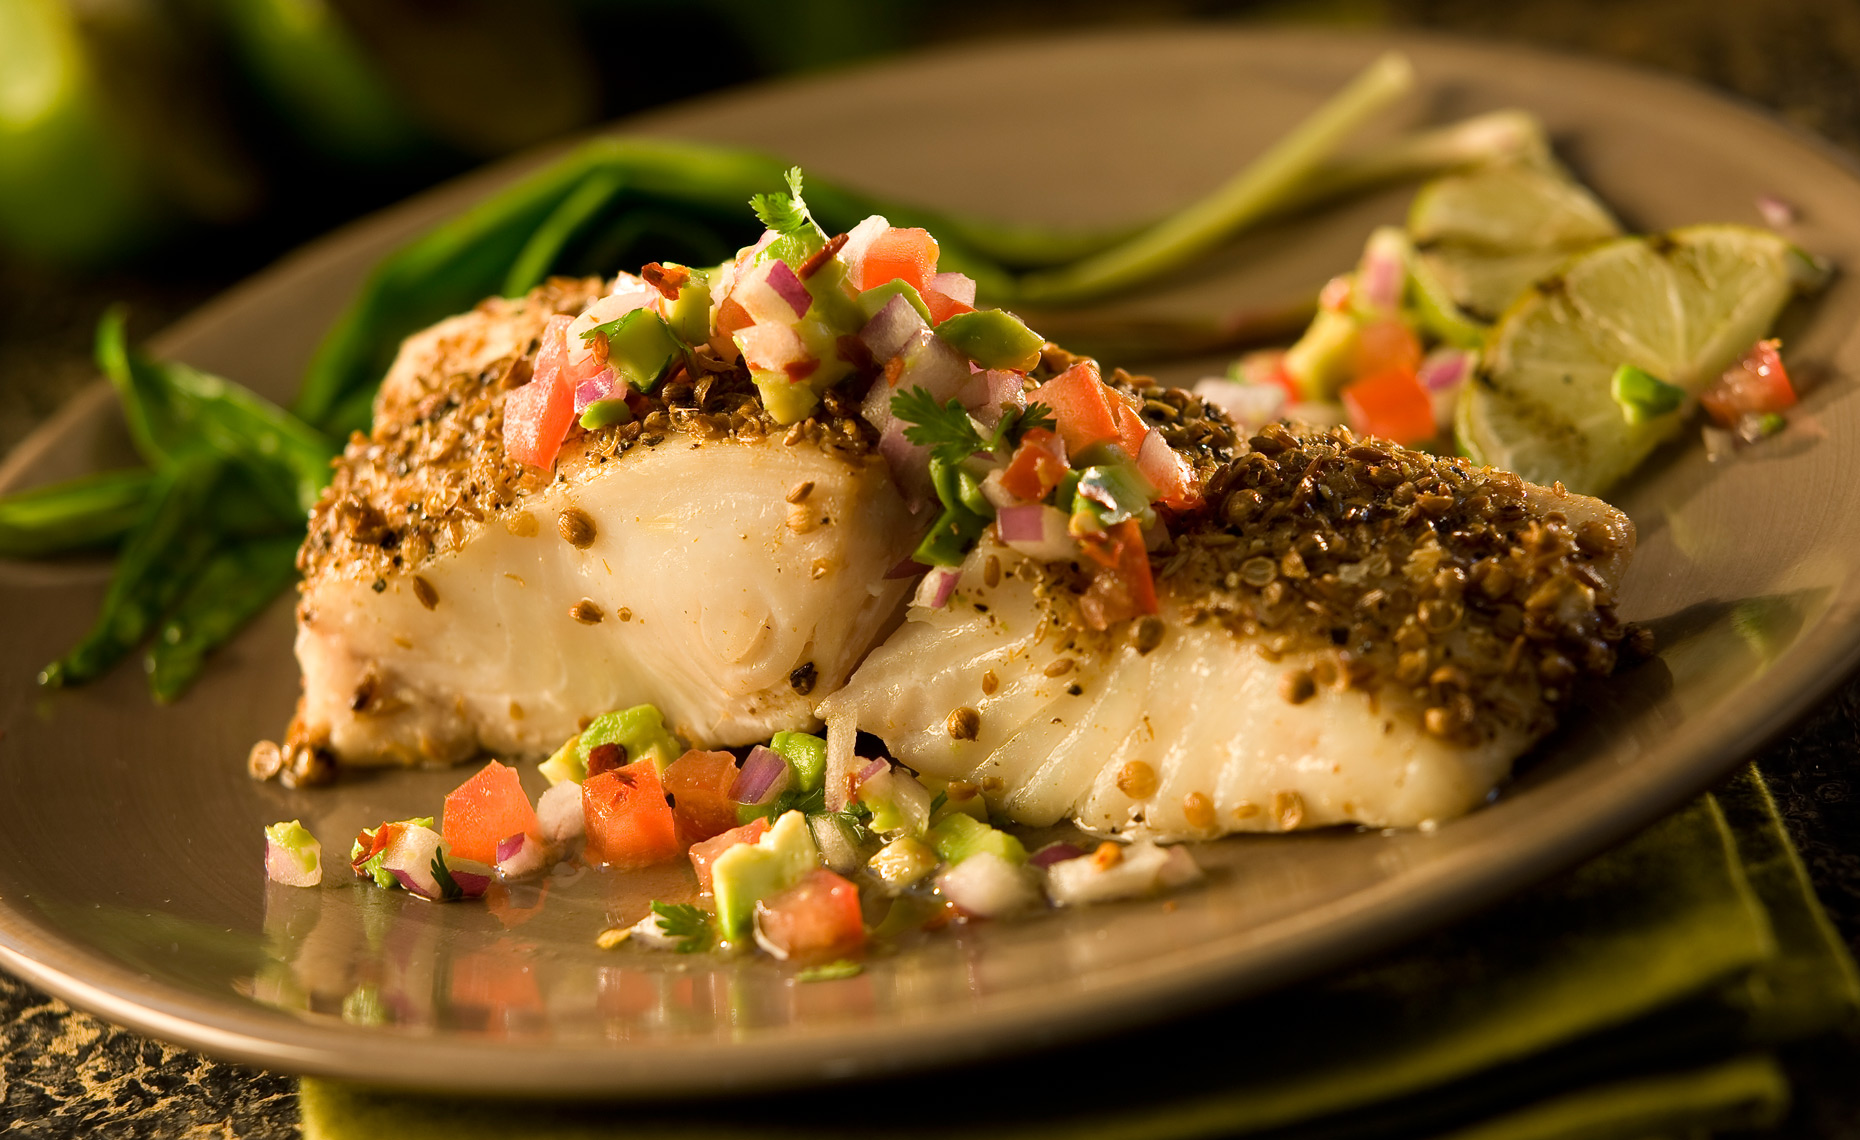 Food Photographer, Seafood Photography | Pohuski Studios,  Caper Crusted Halibut